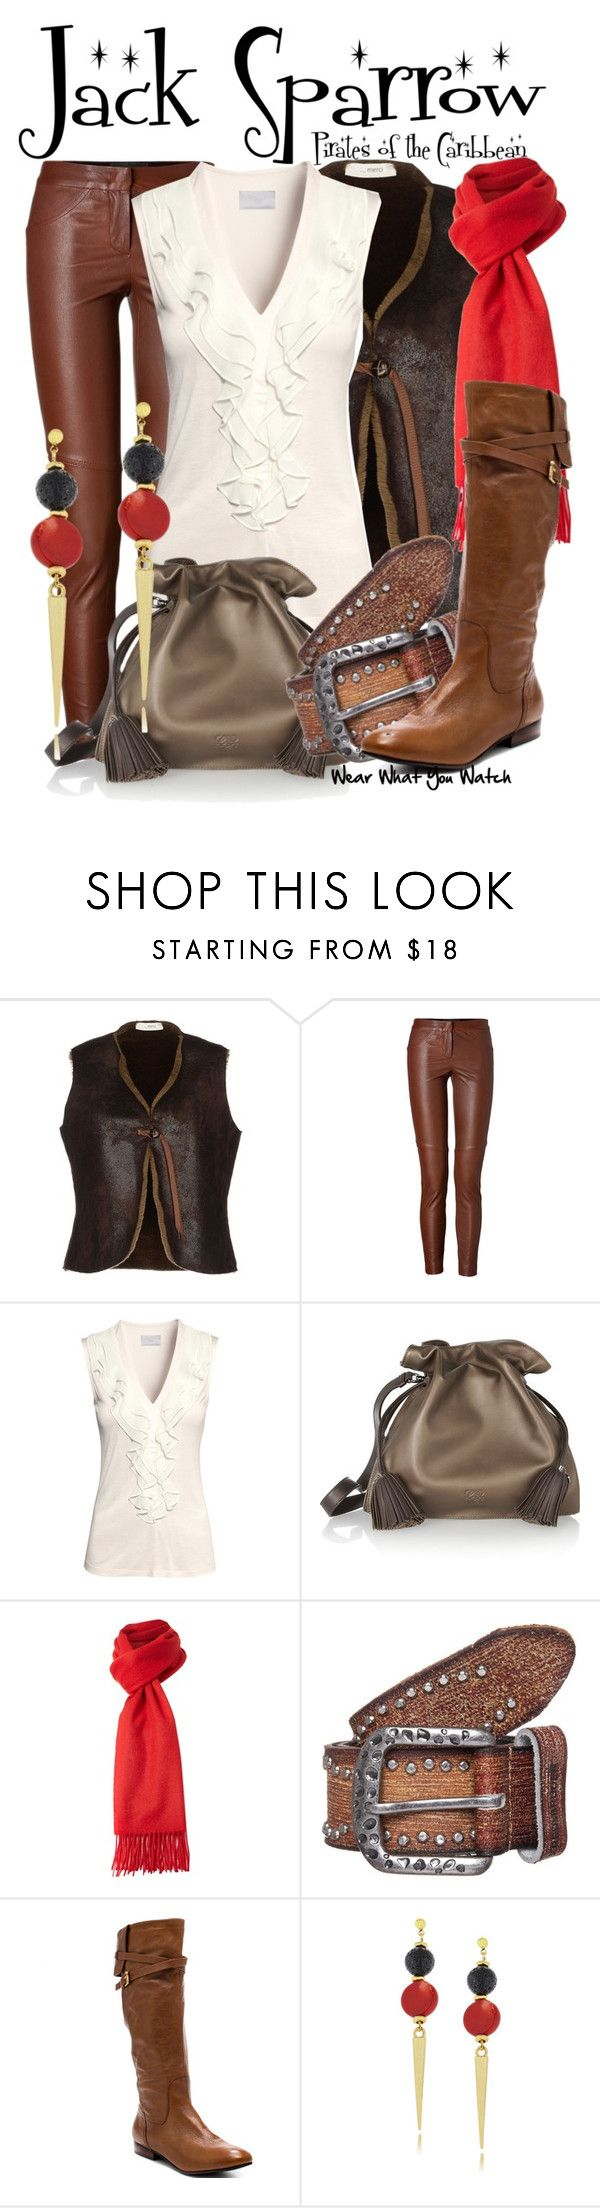 """""""Pirates of the Caribbean"""" by wearwhatyouwatch ❤ liked on Polyvore featuring ..,MERCI, A.L.C., H&M, Loewe, GLEN PRINCE, FREDsBRUDER, GUESS, wearwhatyouwatch and film"""